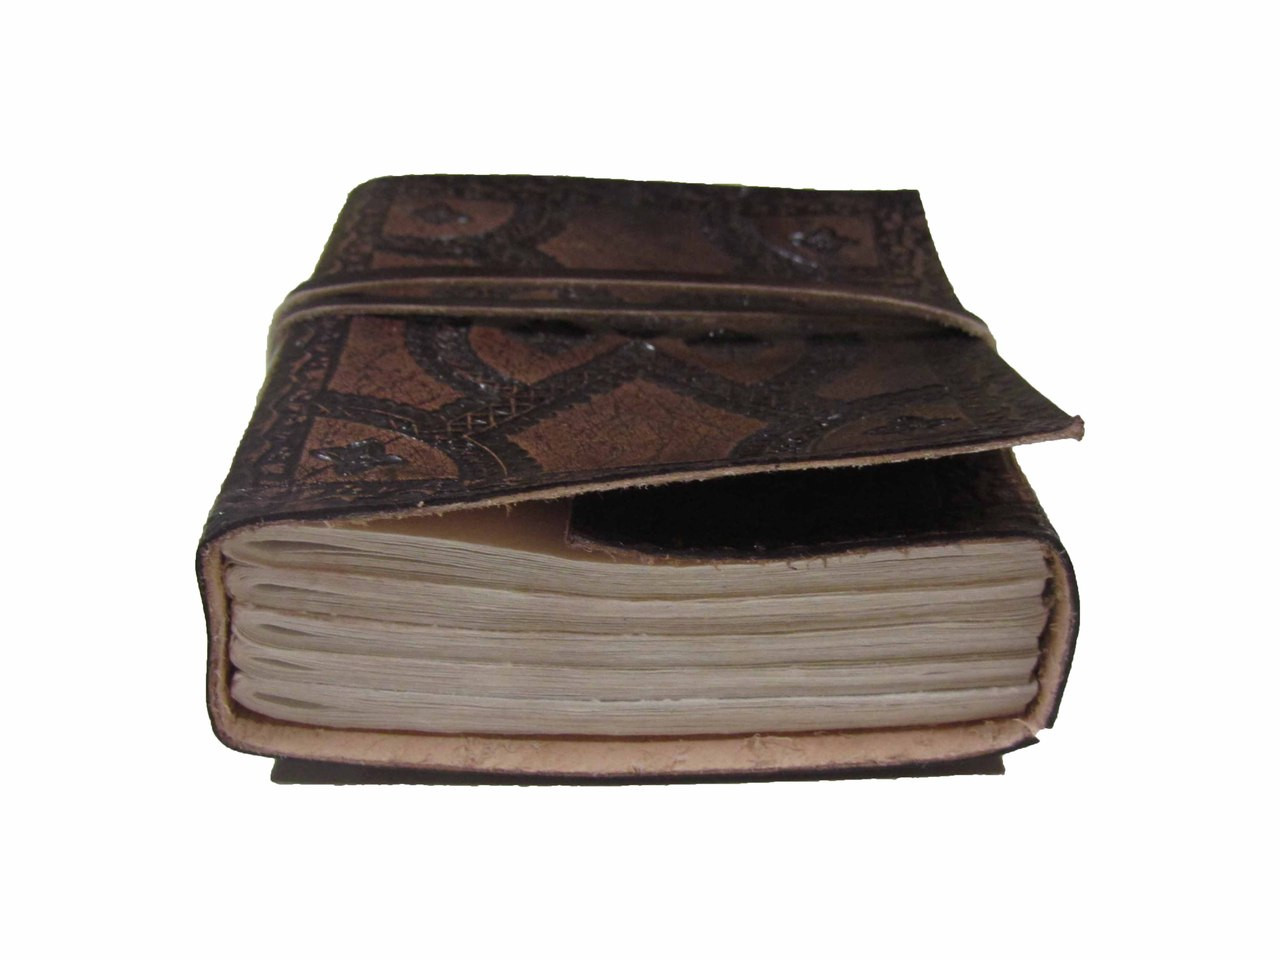 embossed leather journal - small - eye level view